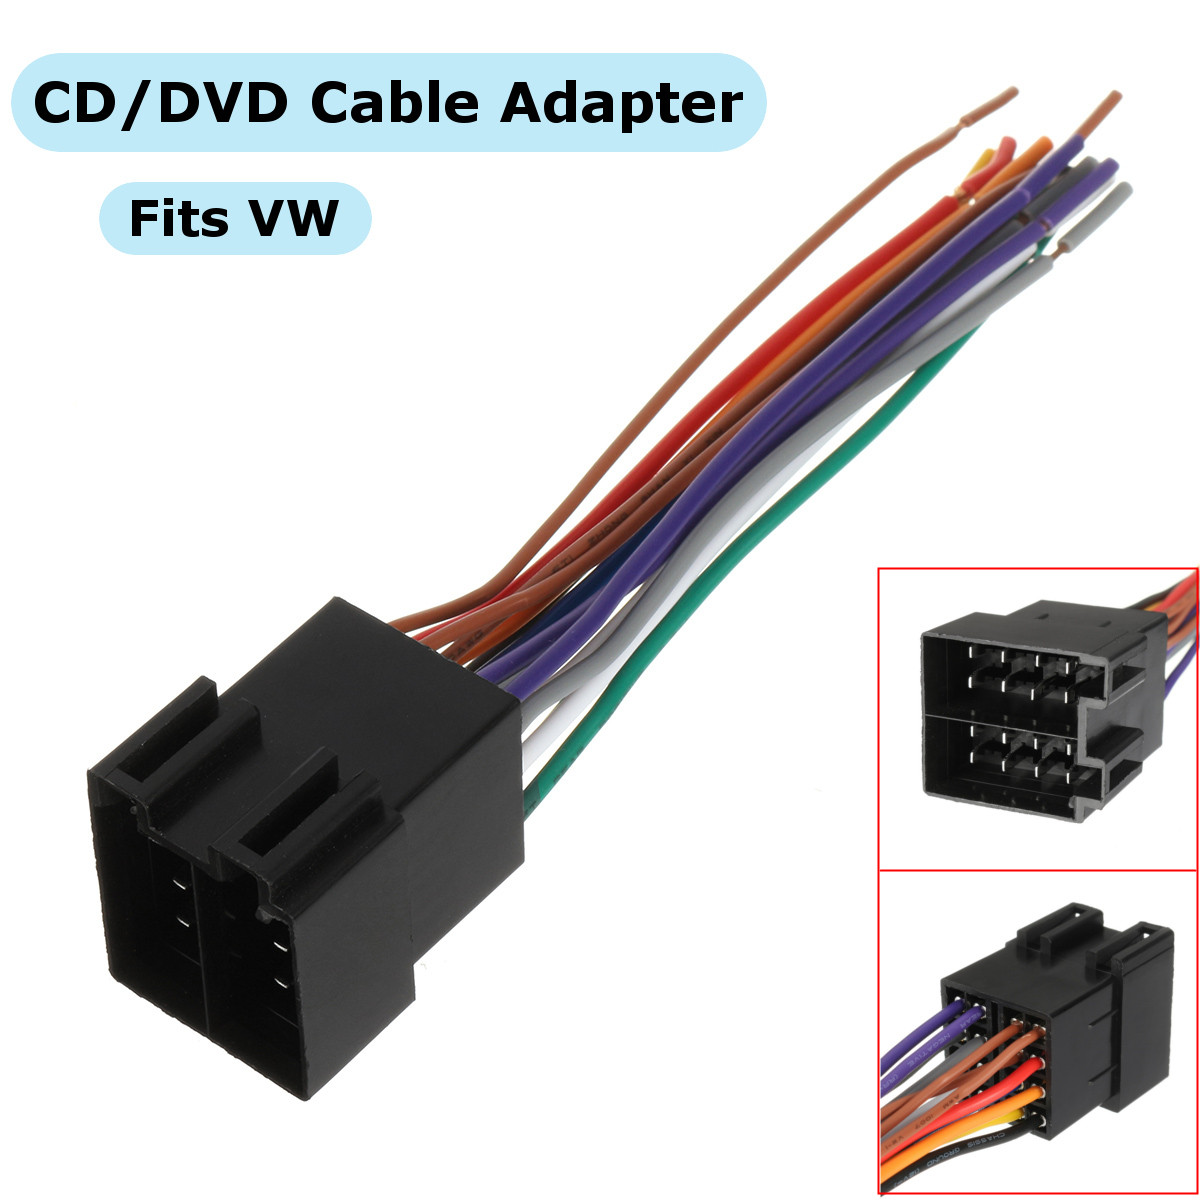 small resolution of car stereo cd player wiring harness wire aftermarket radio install volkswagen car stereo cd player wiring harness wire aftermarket radio